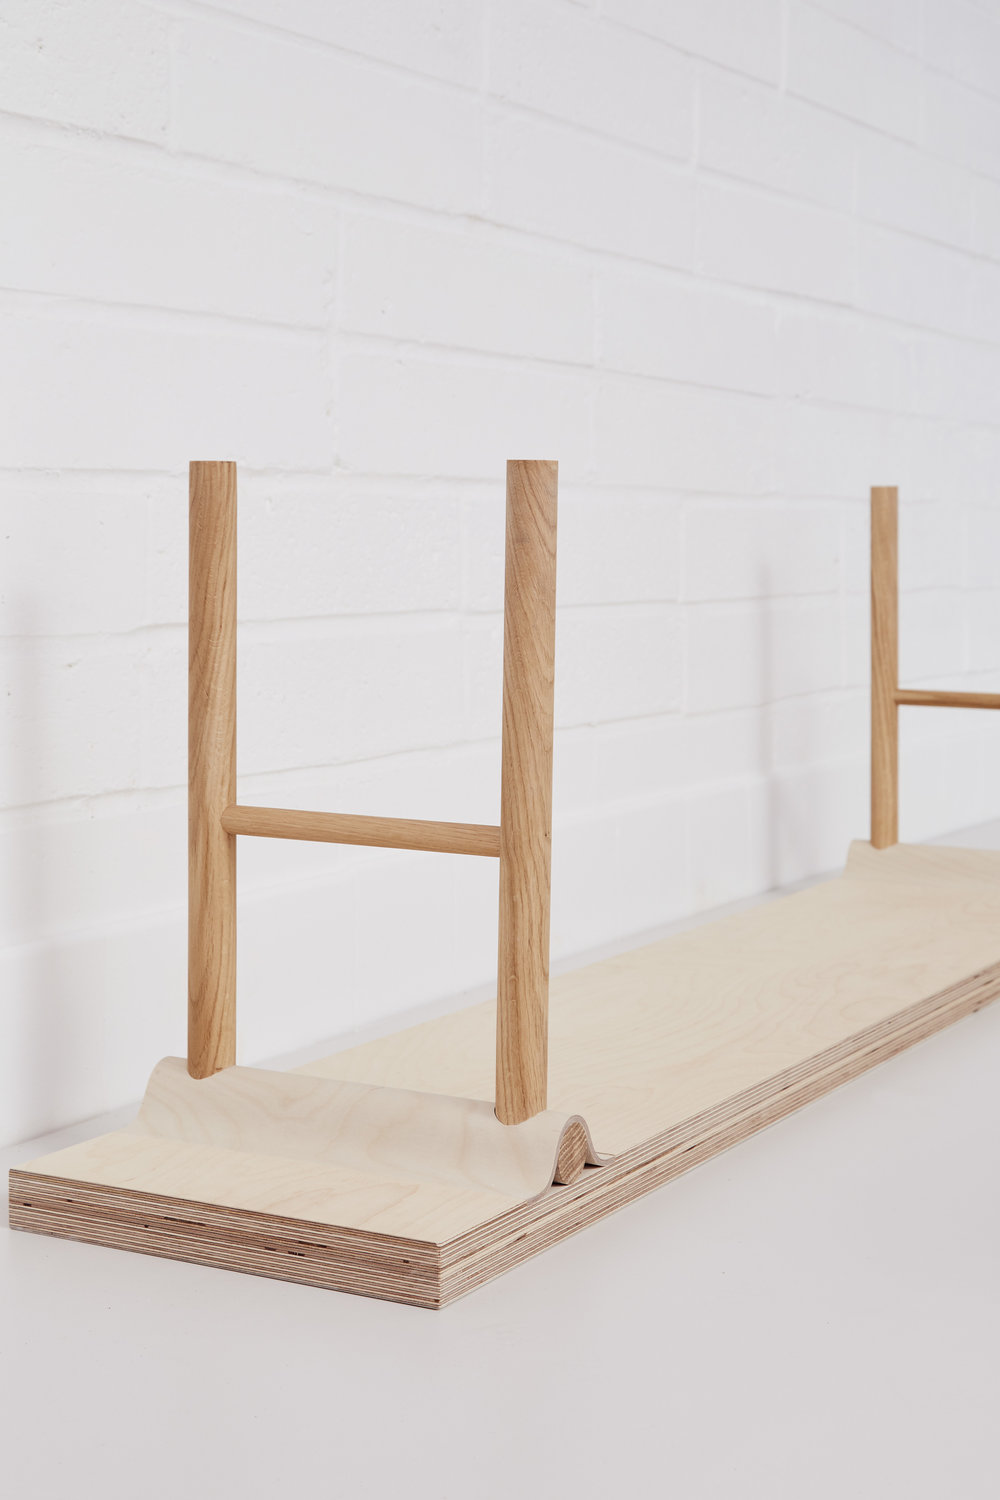 Plywood curved joint bench by Lozi